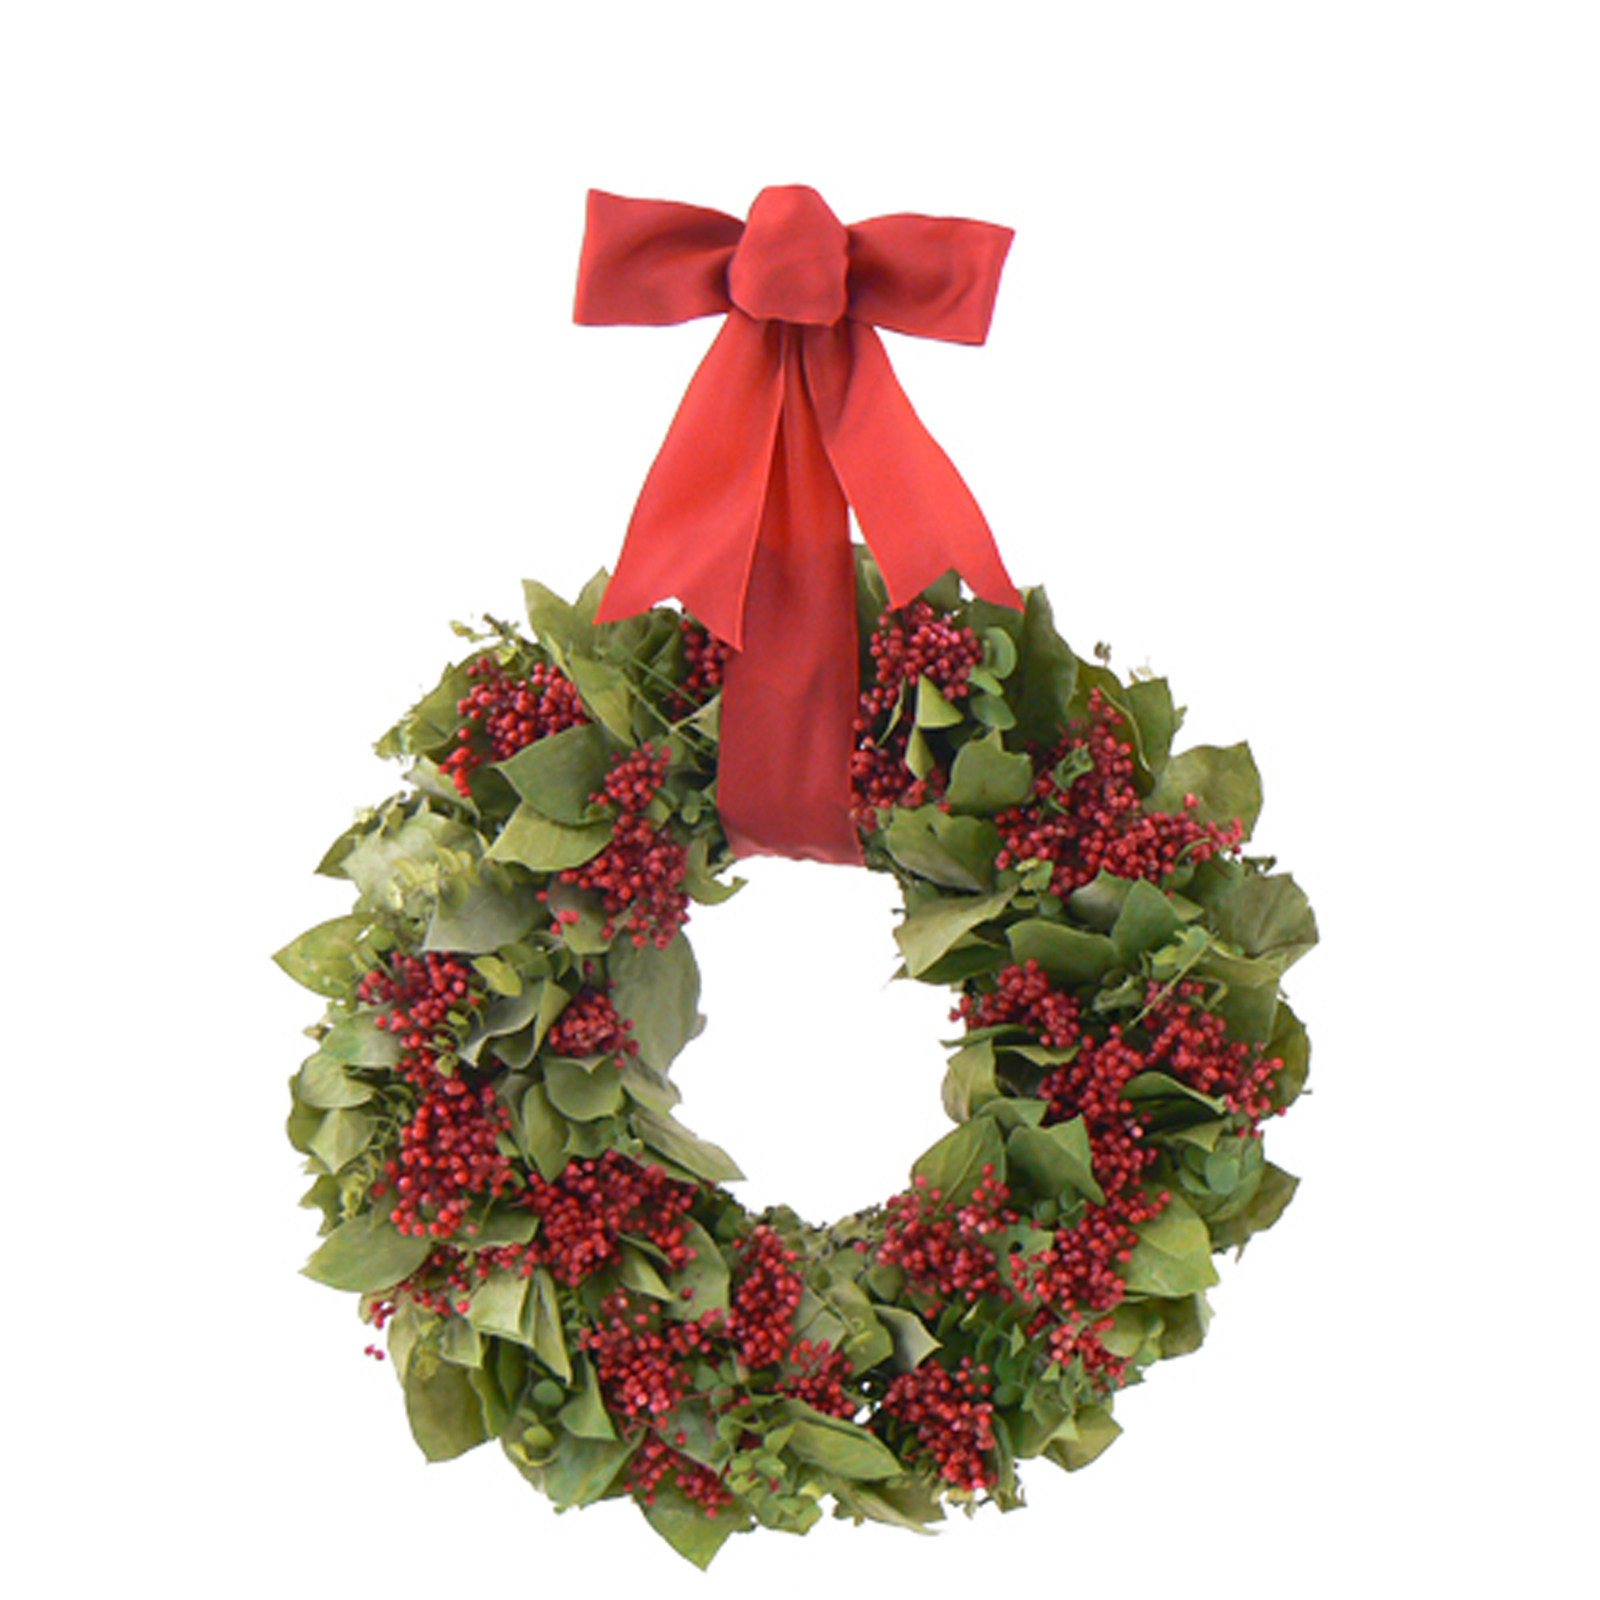 The Christmas Tree Company  18 In. Crimson Christmas Dried Floral Wreath